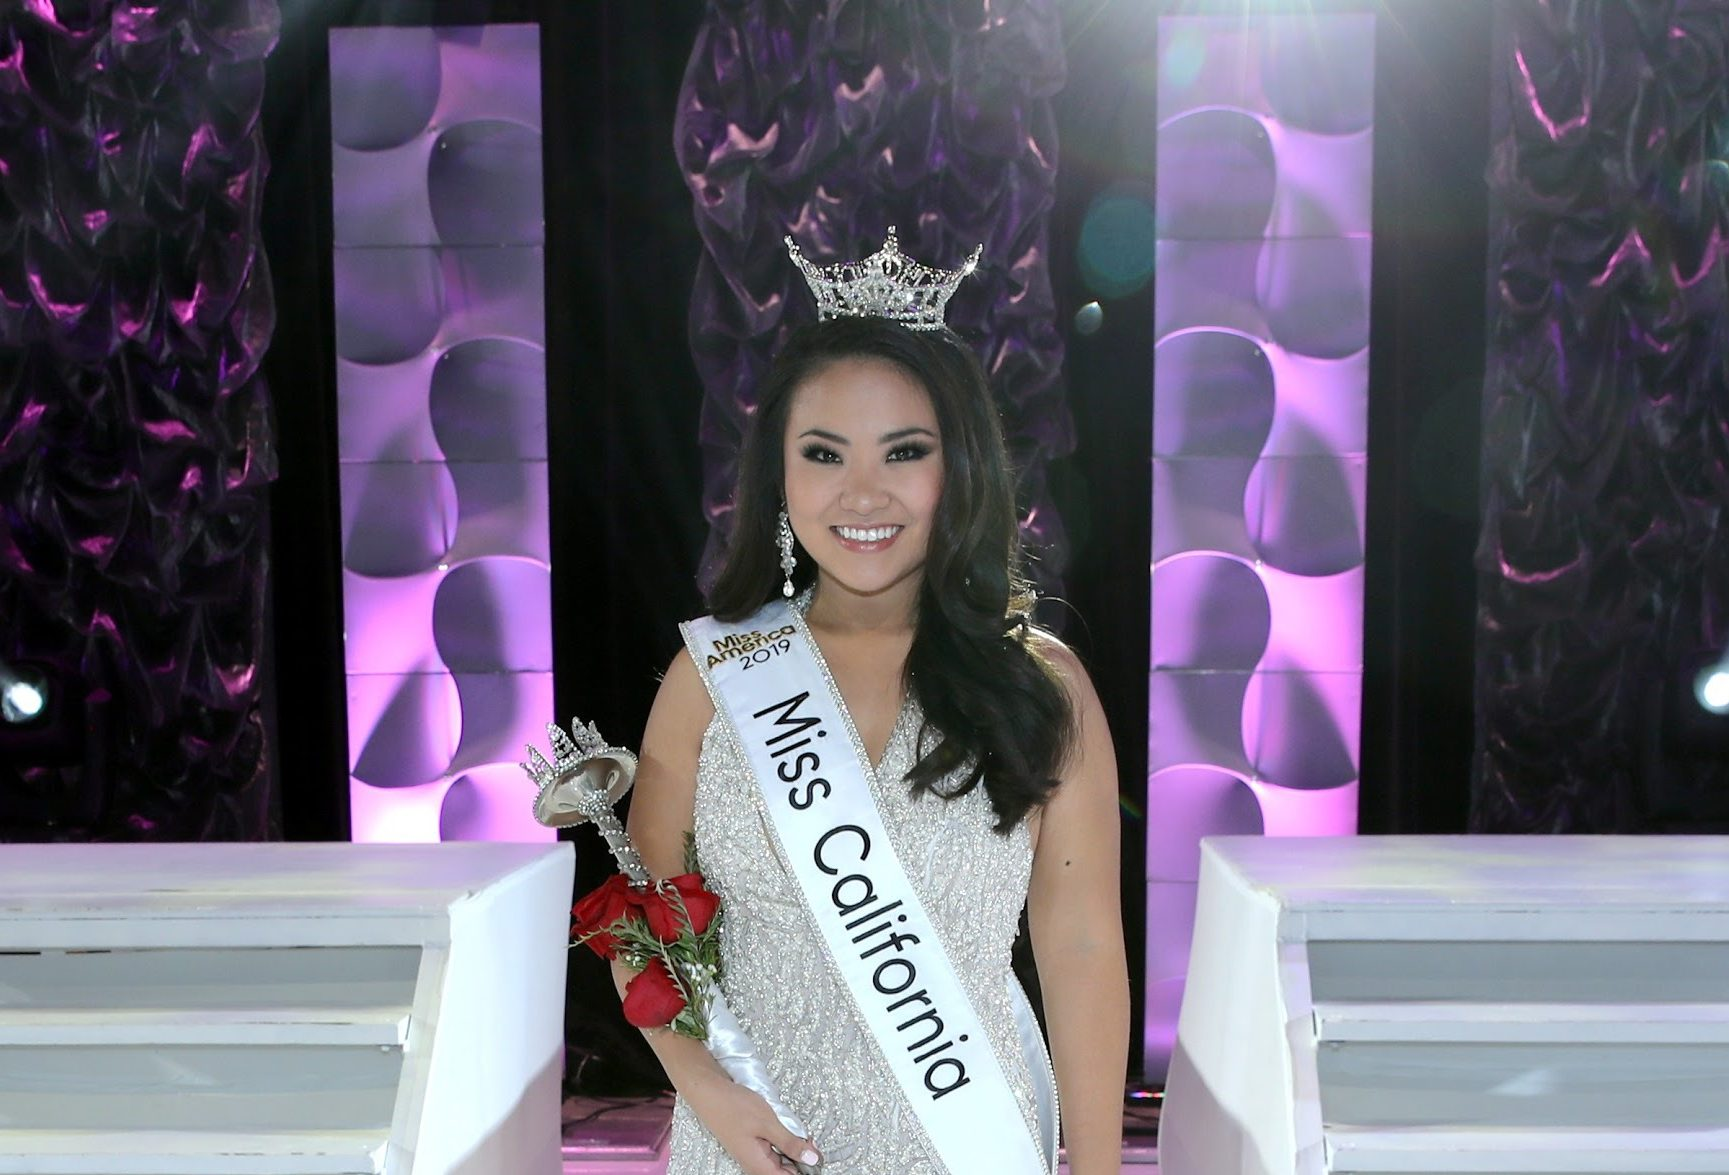 Eileen Ki in white evening gown with Miss California crown, sash and scepter